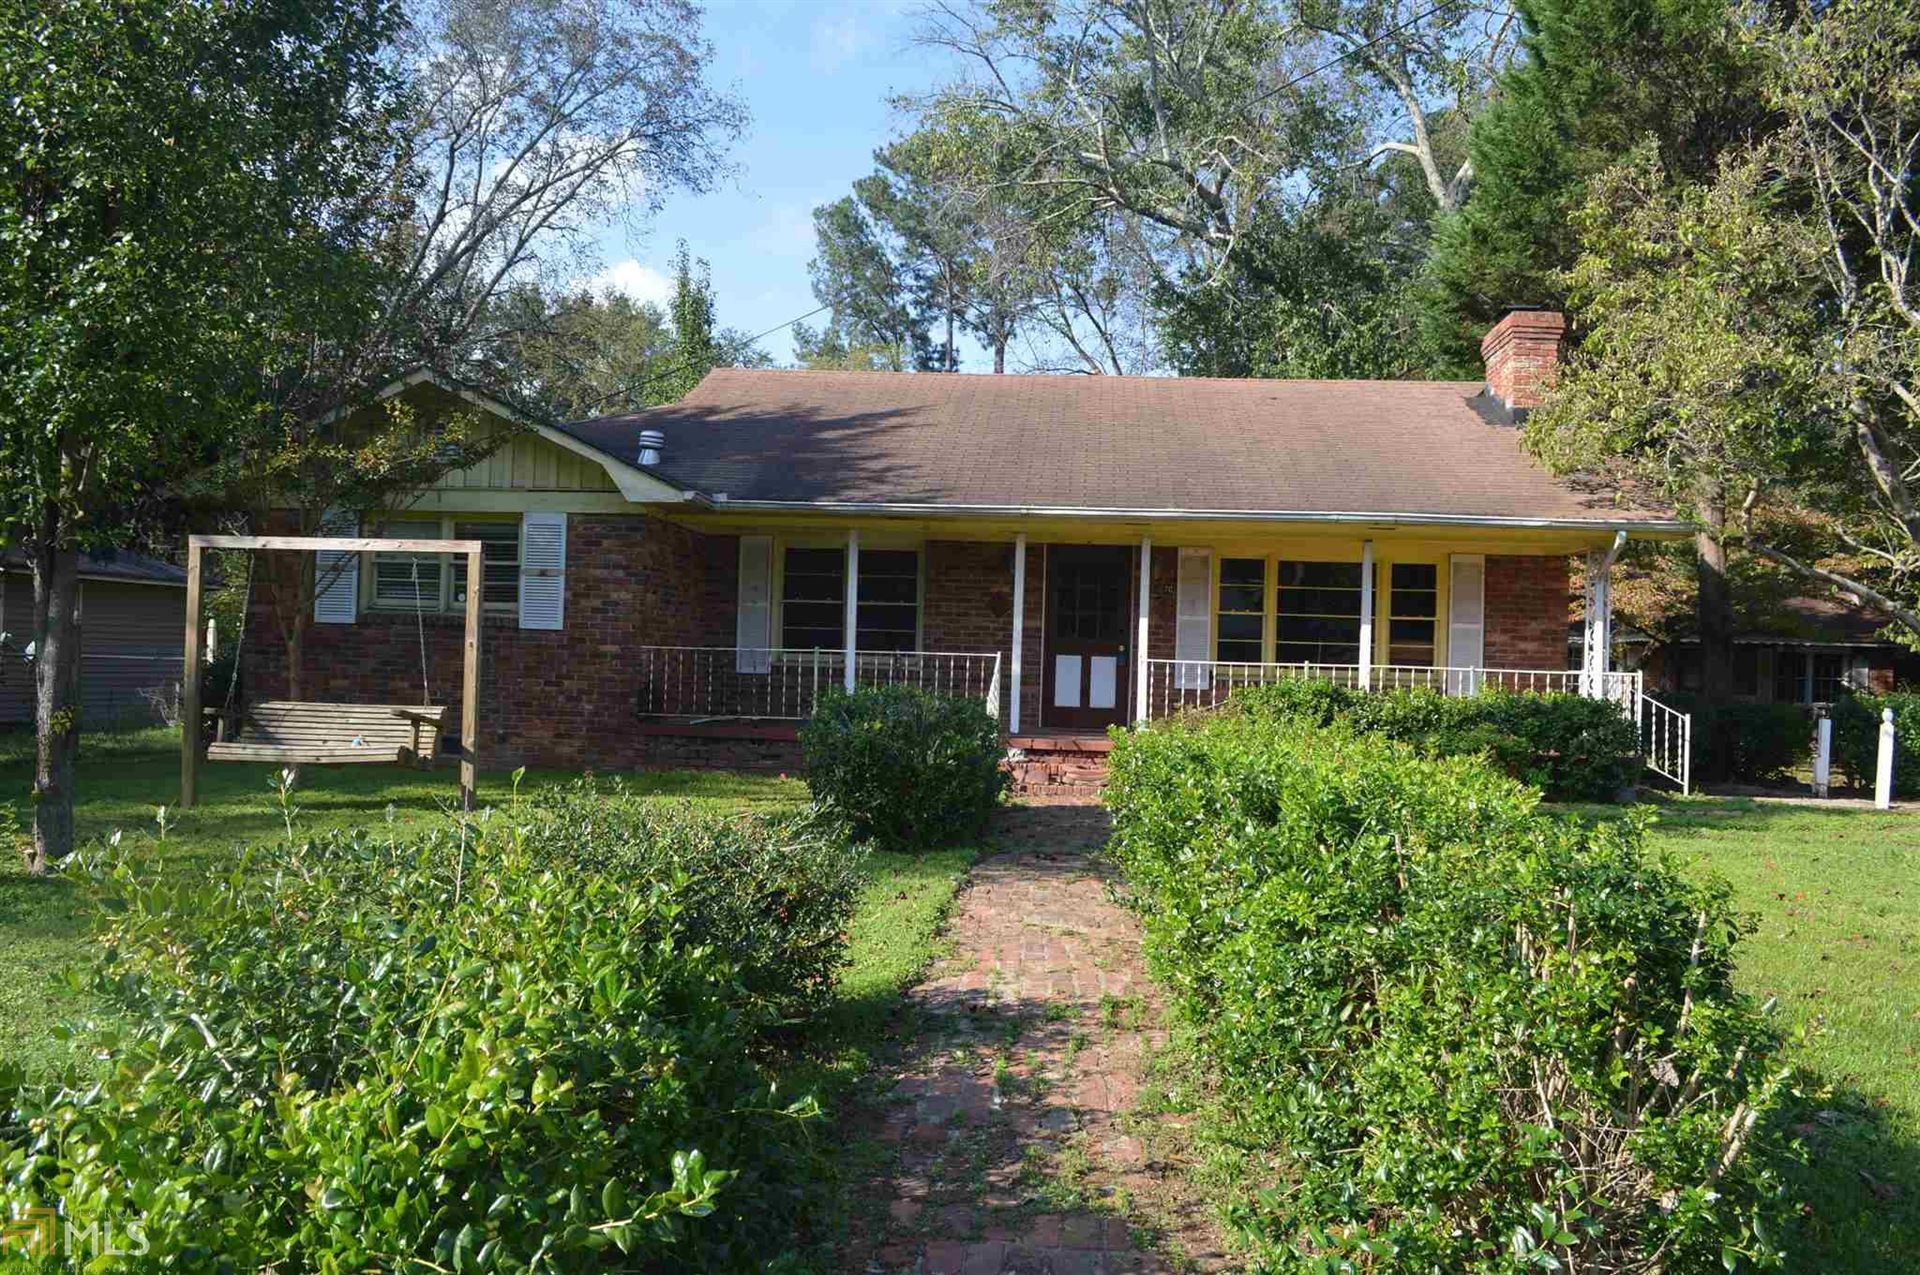 4170 Washington St, Covington, GA 30014 - MLS#: 8881585